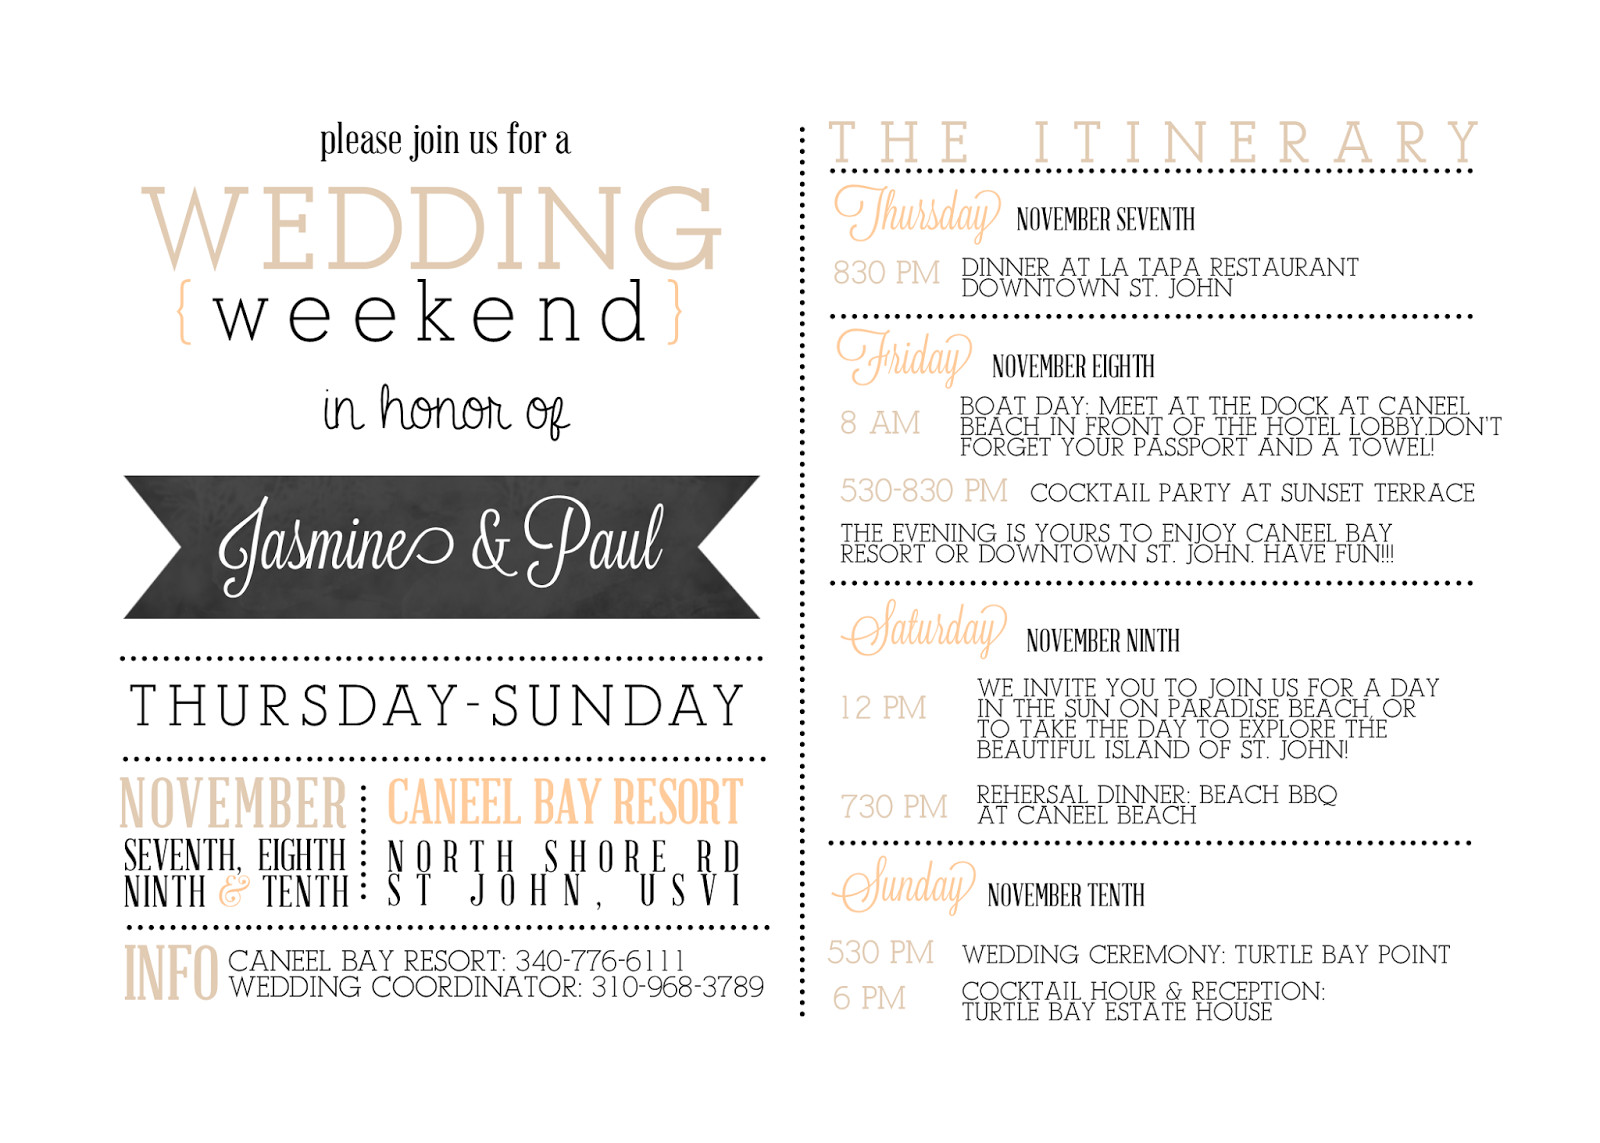 Wedding Weekend Itinerary Template Sugar Queens Custom Wedding Wel E Cards